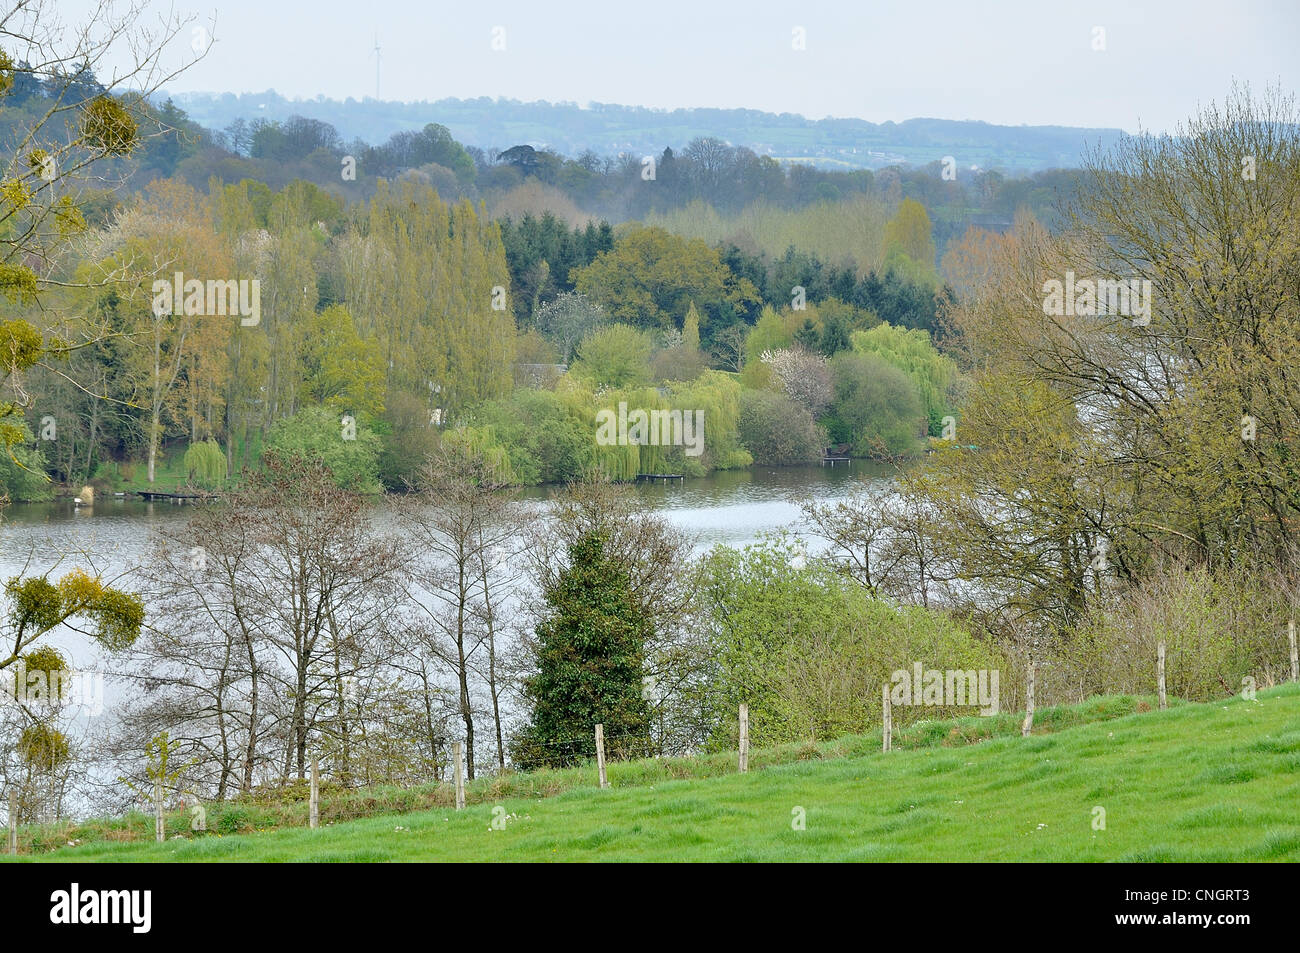 """River lined with trees : """"La Mayenne"""", in spring (La Haie Traversaine, Mayenne department, Loire country, France). Stock Photo"""